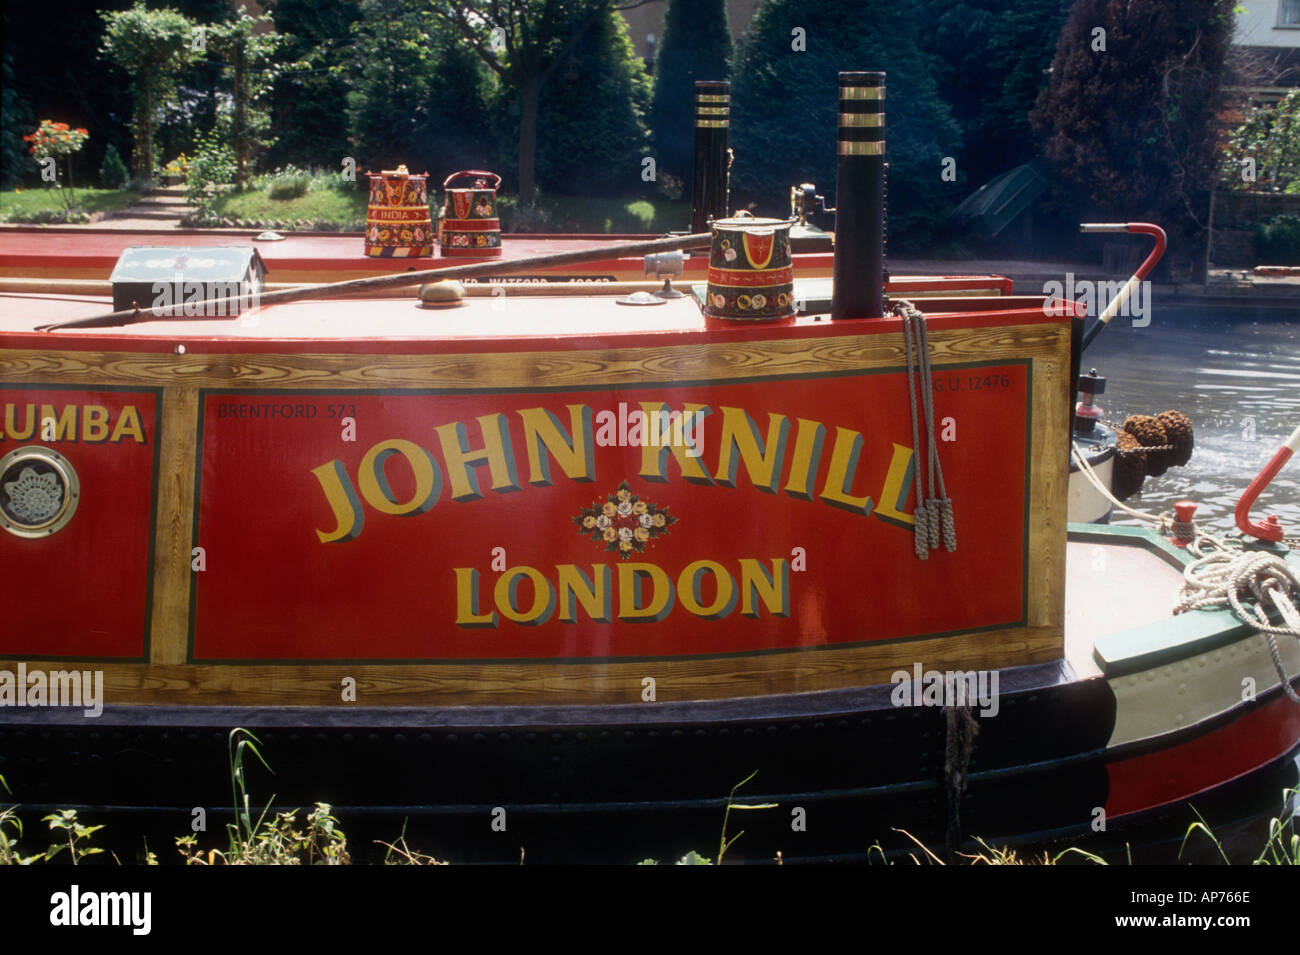 The 1935 former Grand Union Canal Carrying Company motor narrowboat Columba as owned by John Knill from London - Stock Image